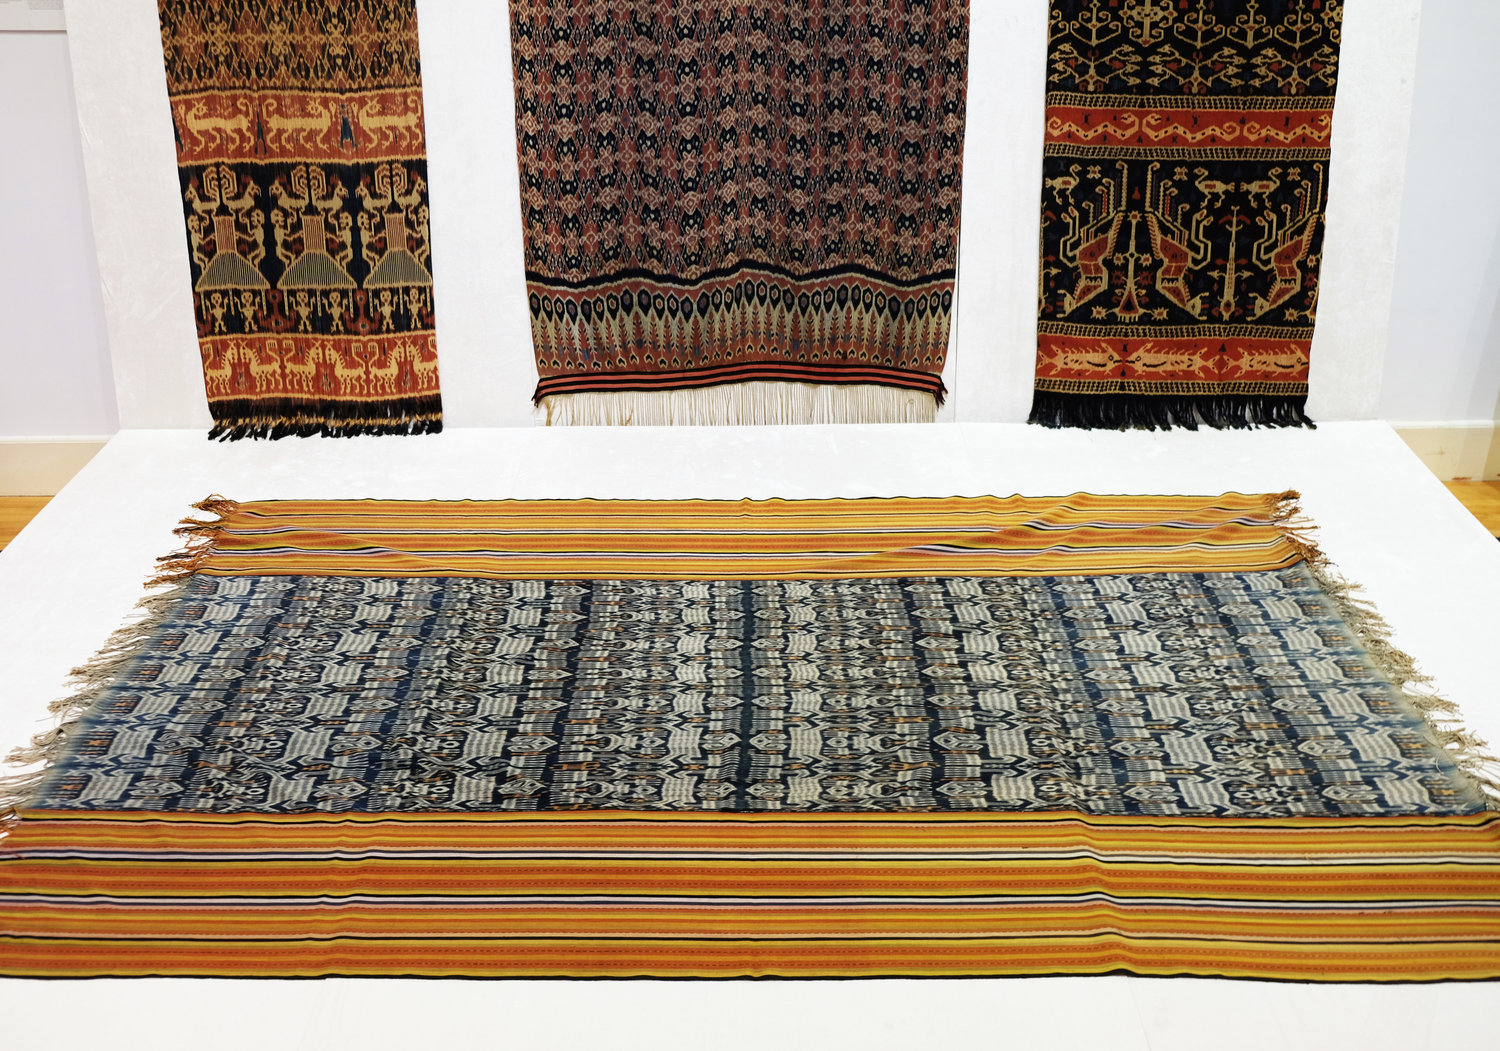 Peter ten Hoopen and The Pusaka Collection's Fibres of Life: Ikat Textiles of the Indonesian Archipelago, exhibited at University Museum and Art Gallery © Hong Kong University Art Gallery